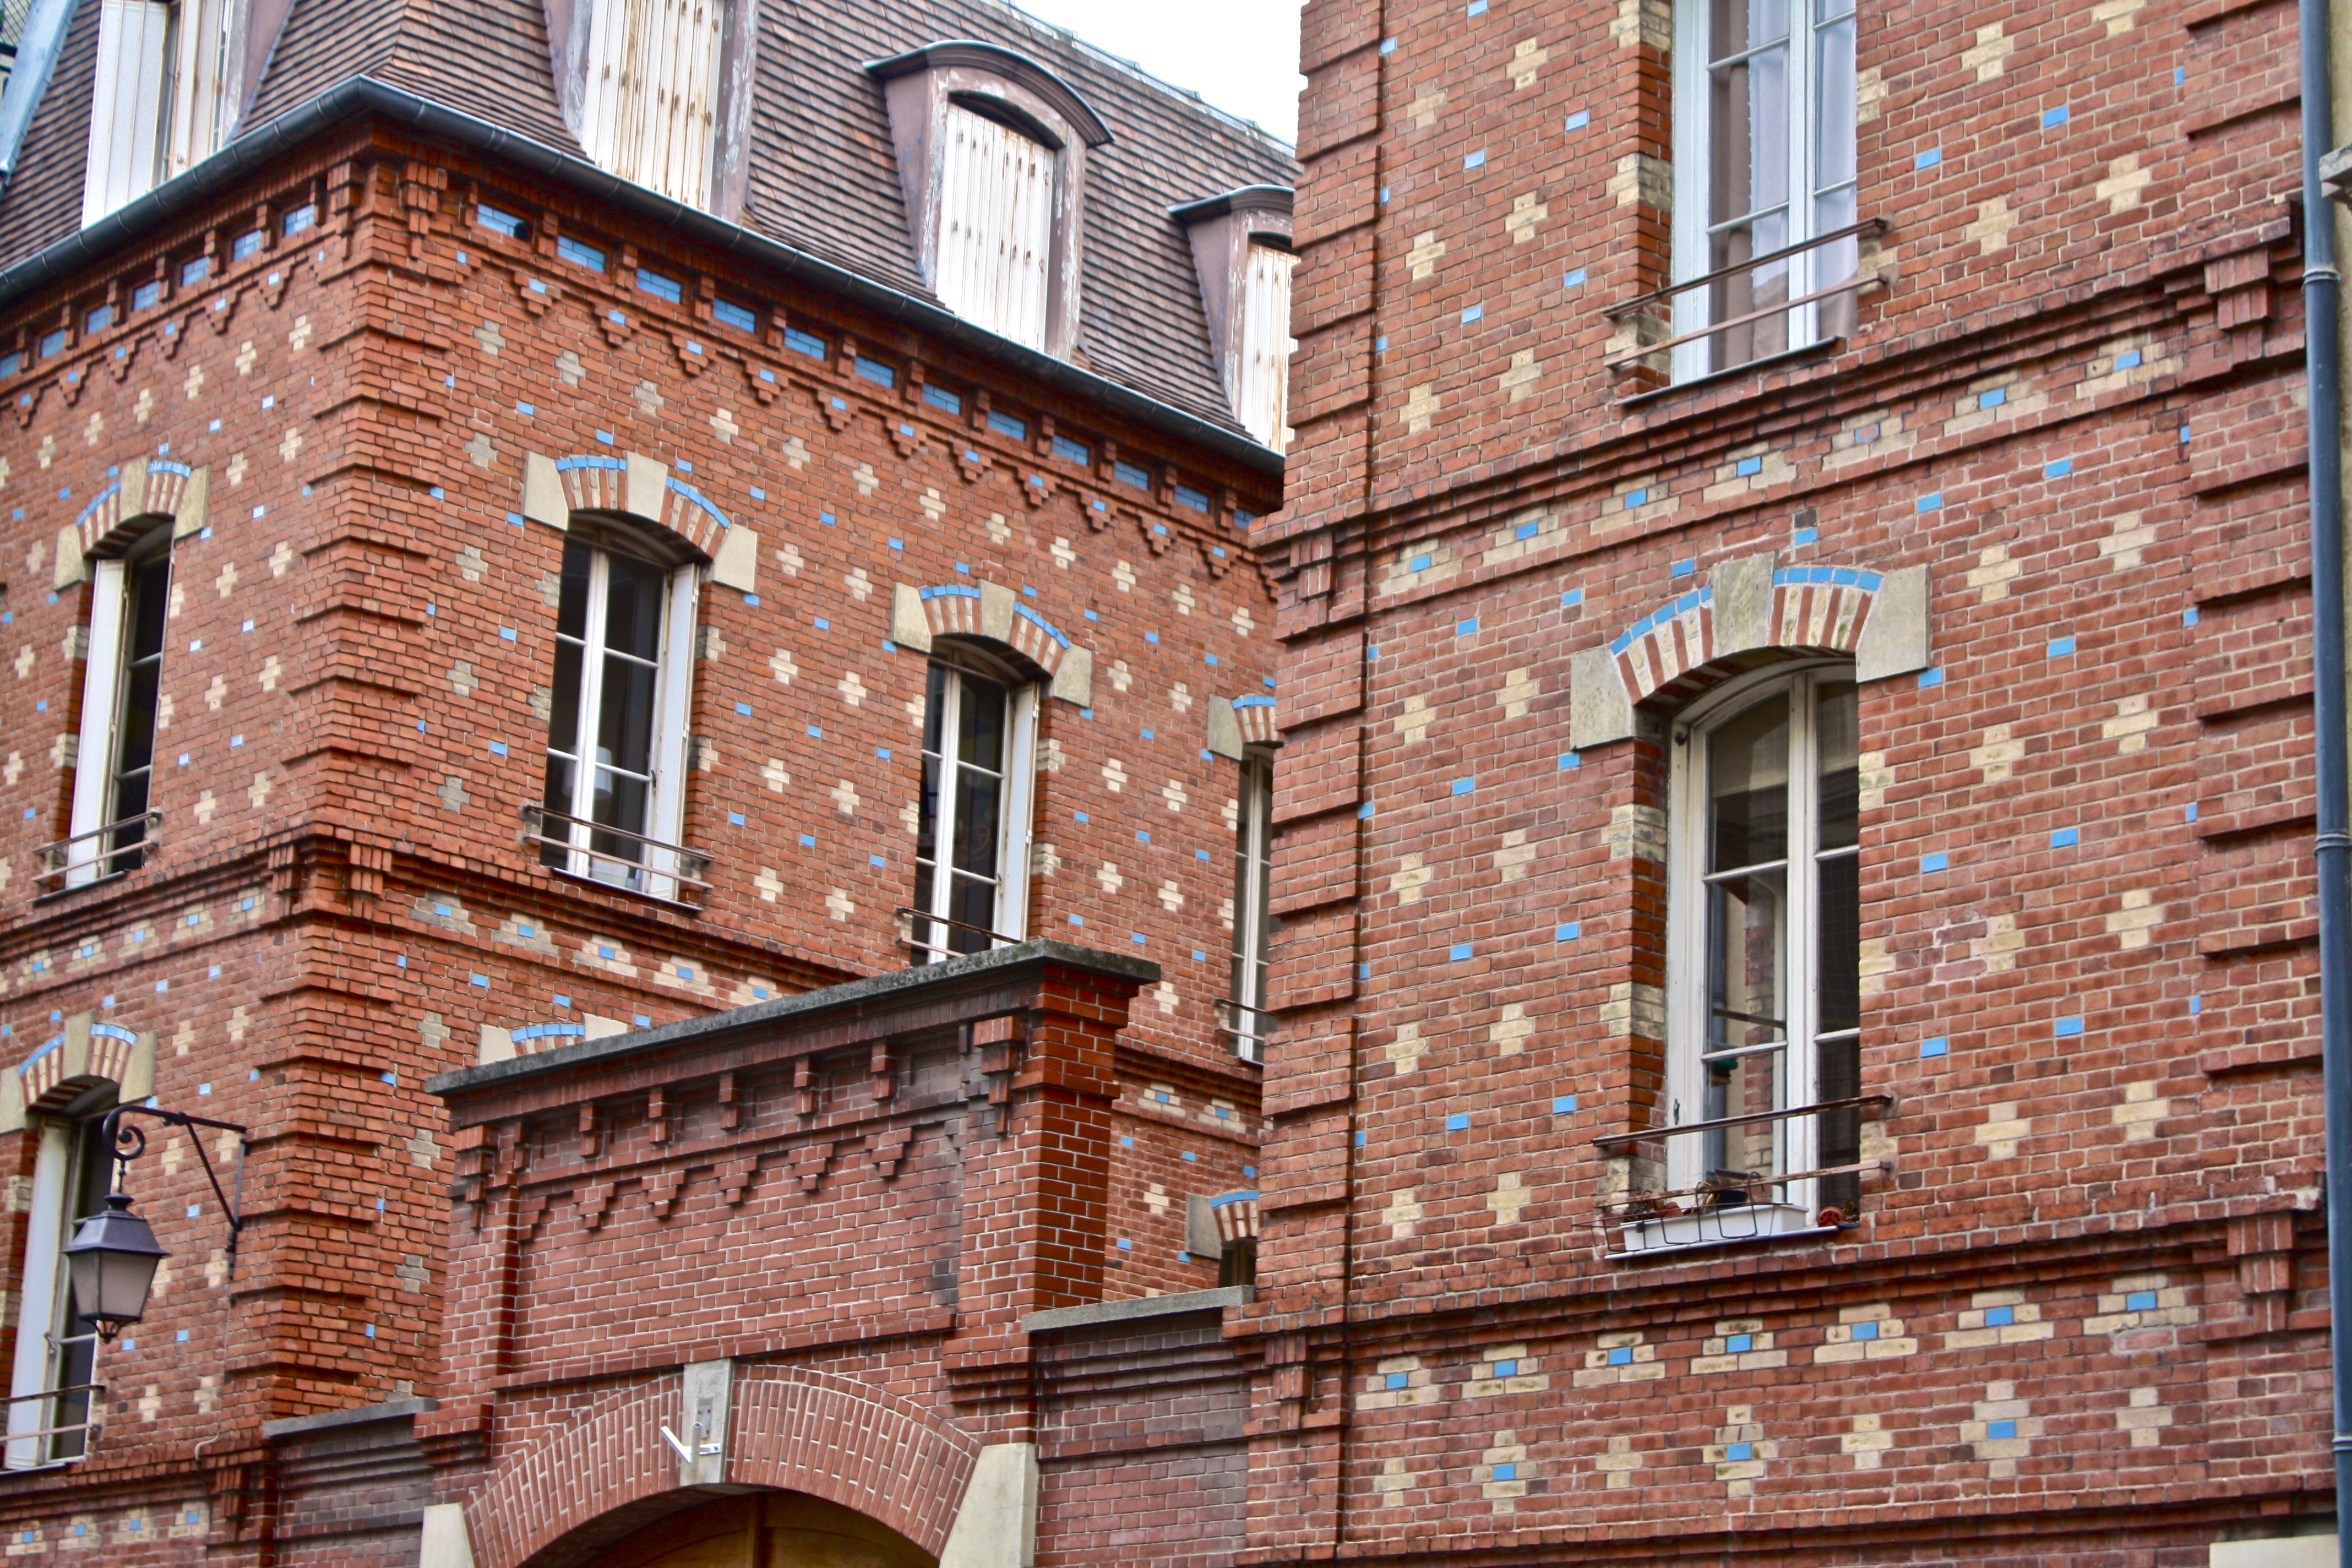 An interesting brick building facade paris france for Brick facade house